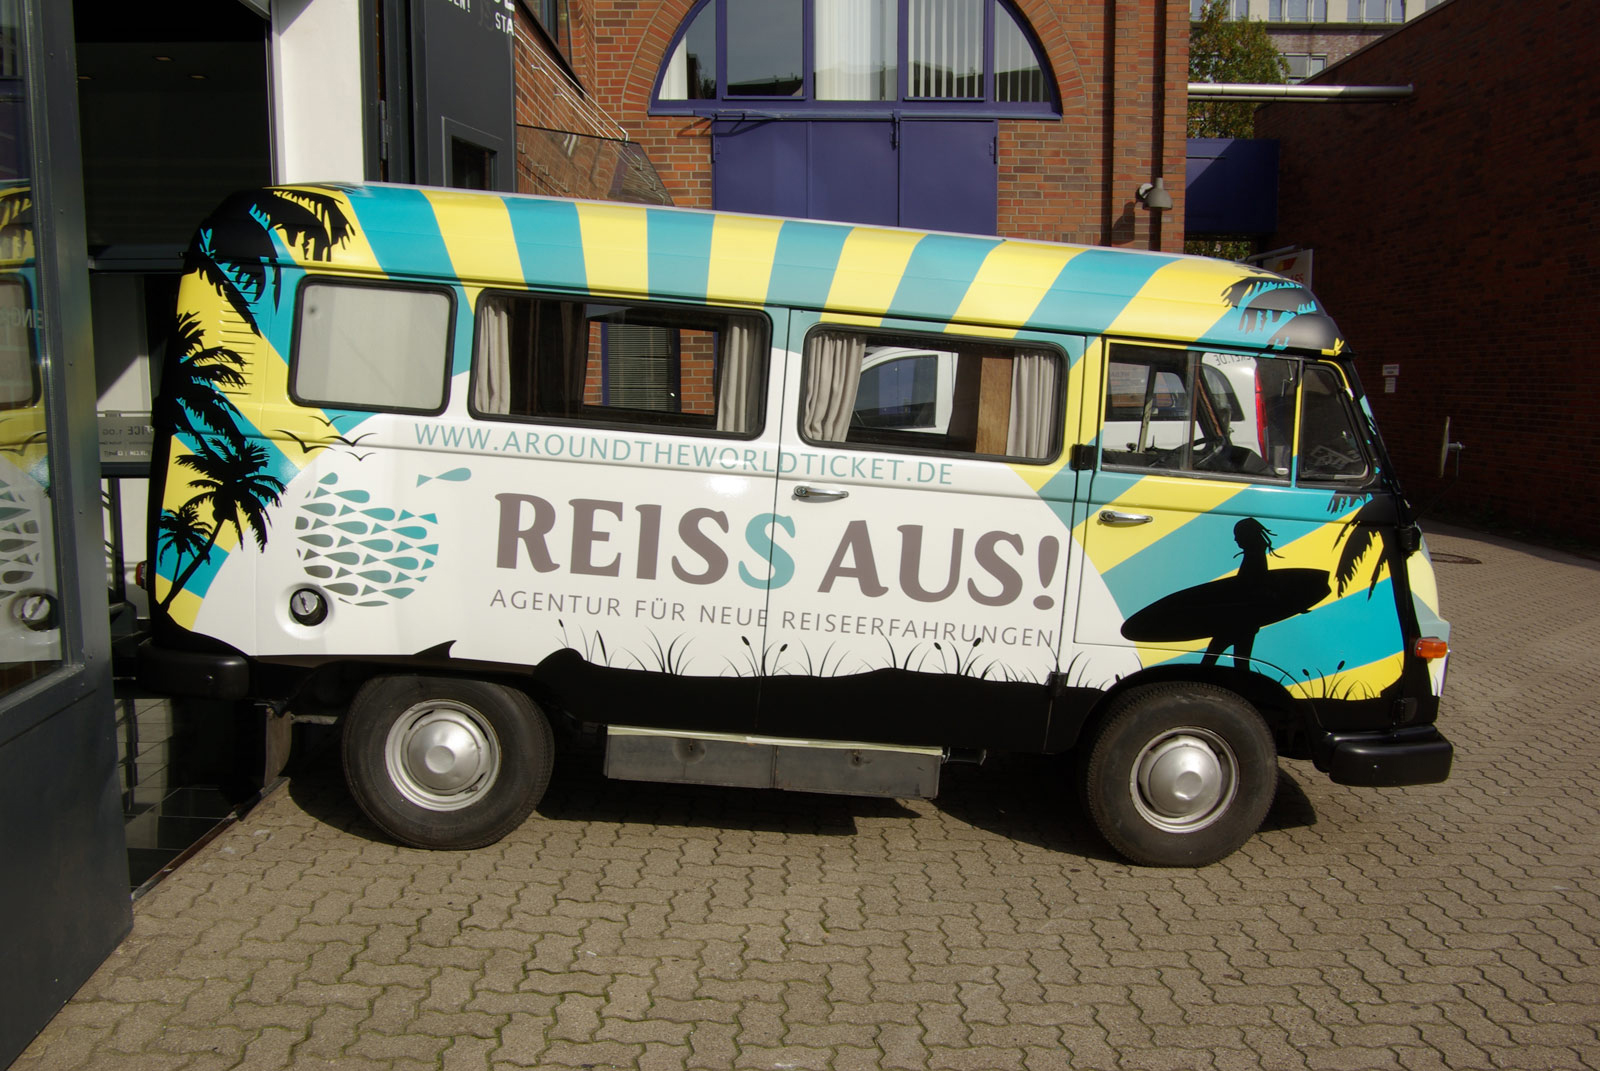 HANOMAG_3D_DIGITALDRUCK_REISS_AUS_14